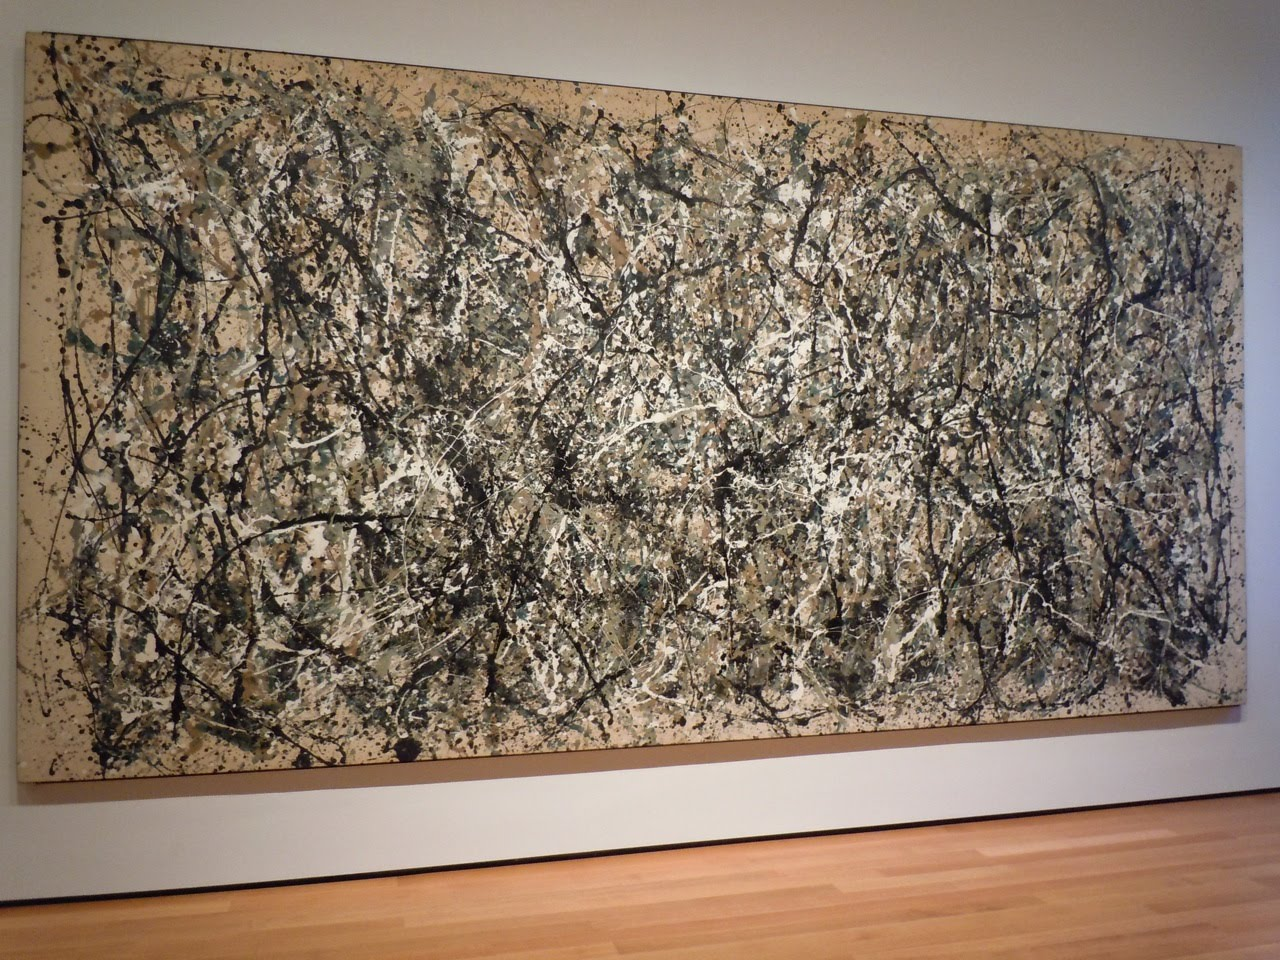 jackson pollock's number 1 1950 lavender Also on view are paintings and works on paper by pollock from the gallery s collection, including number 1, 1950 (lavender mist) (1943) by jackson pollock.